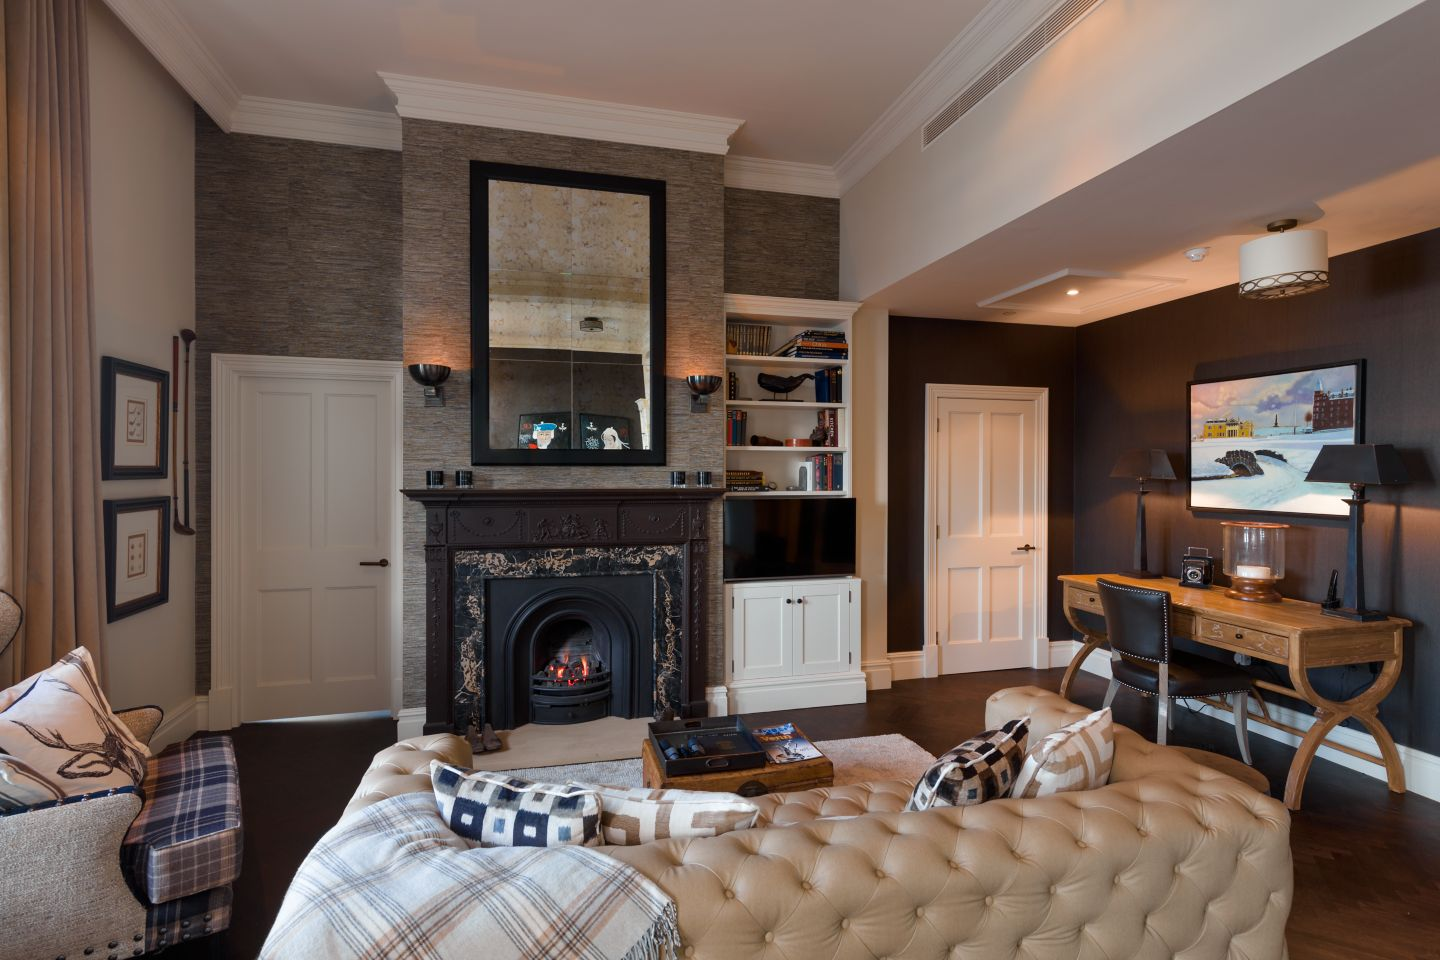 An apartment living area in Hamilton Grand with fireplace and leather couch, St Andrews